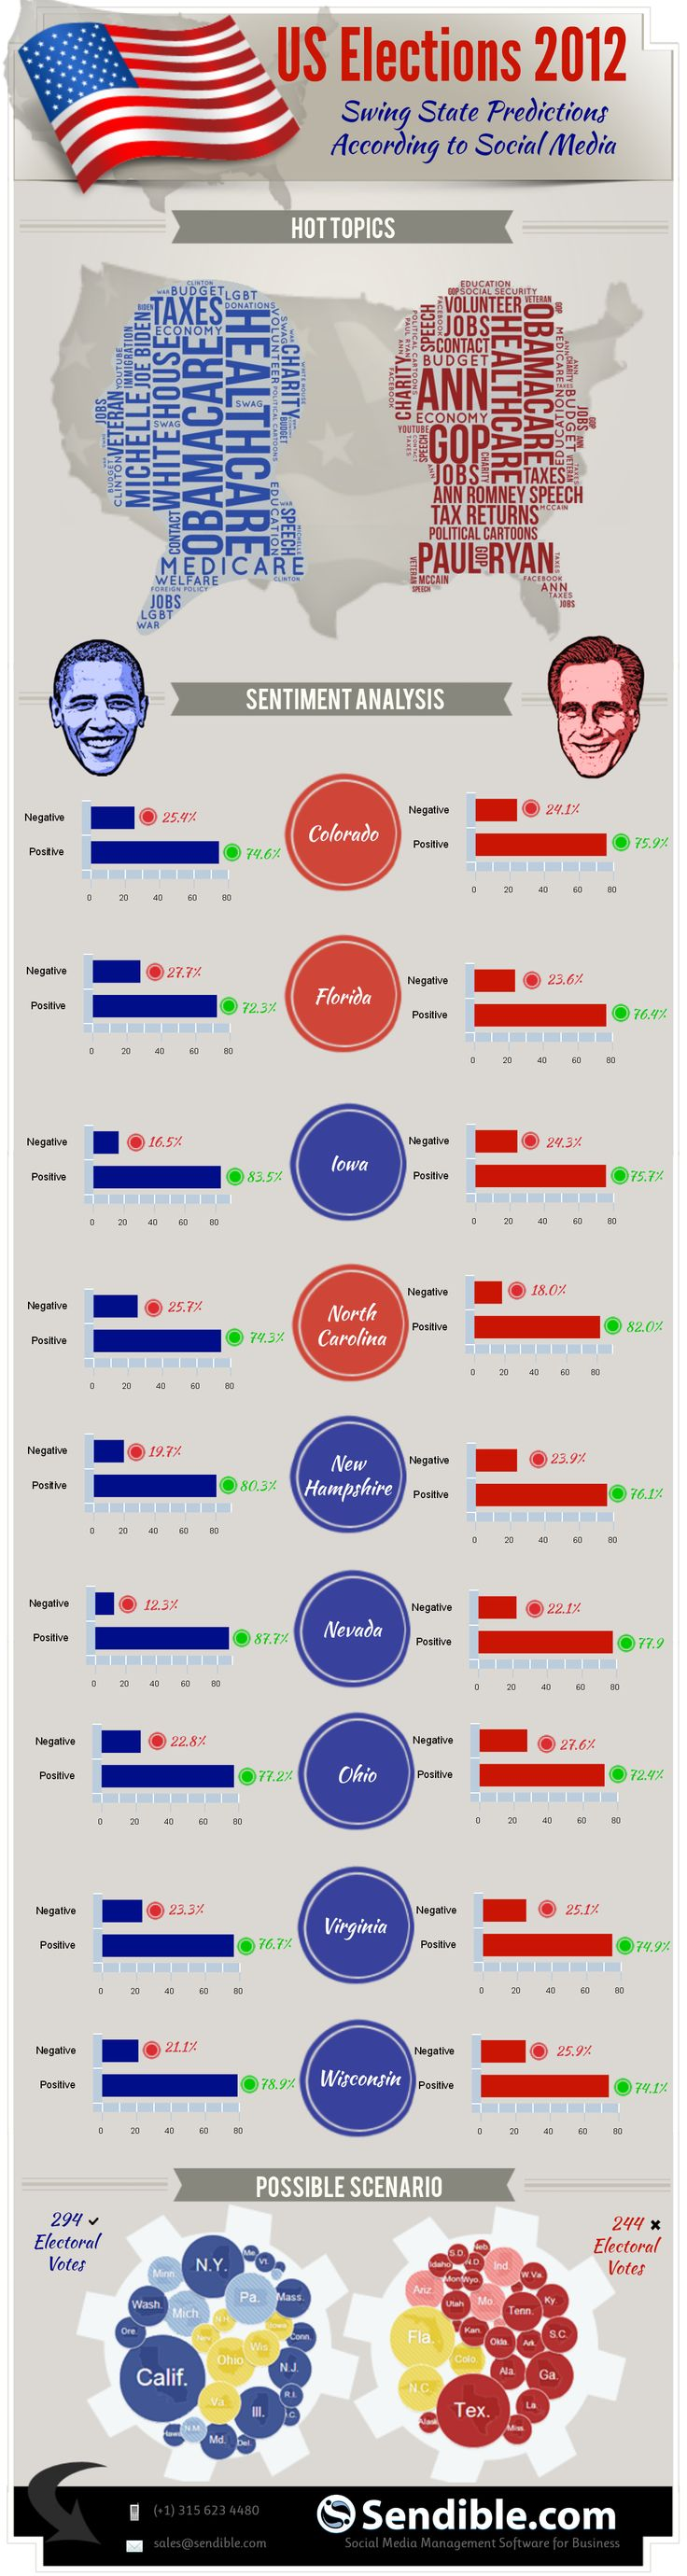 US elections 2012 swing state predictions accordins Social Media #infographic  - popculturez.com